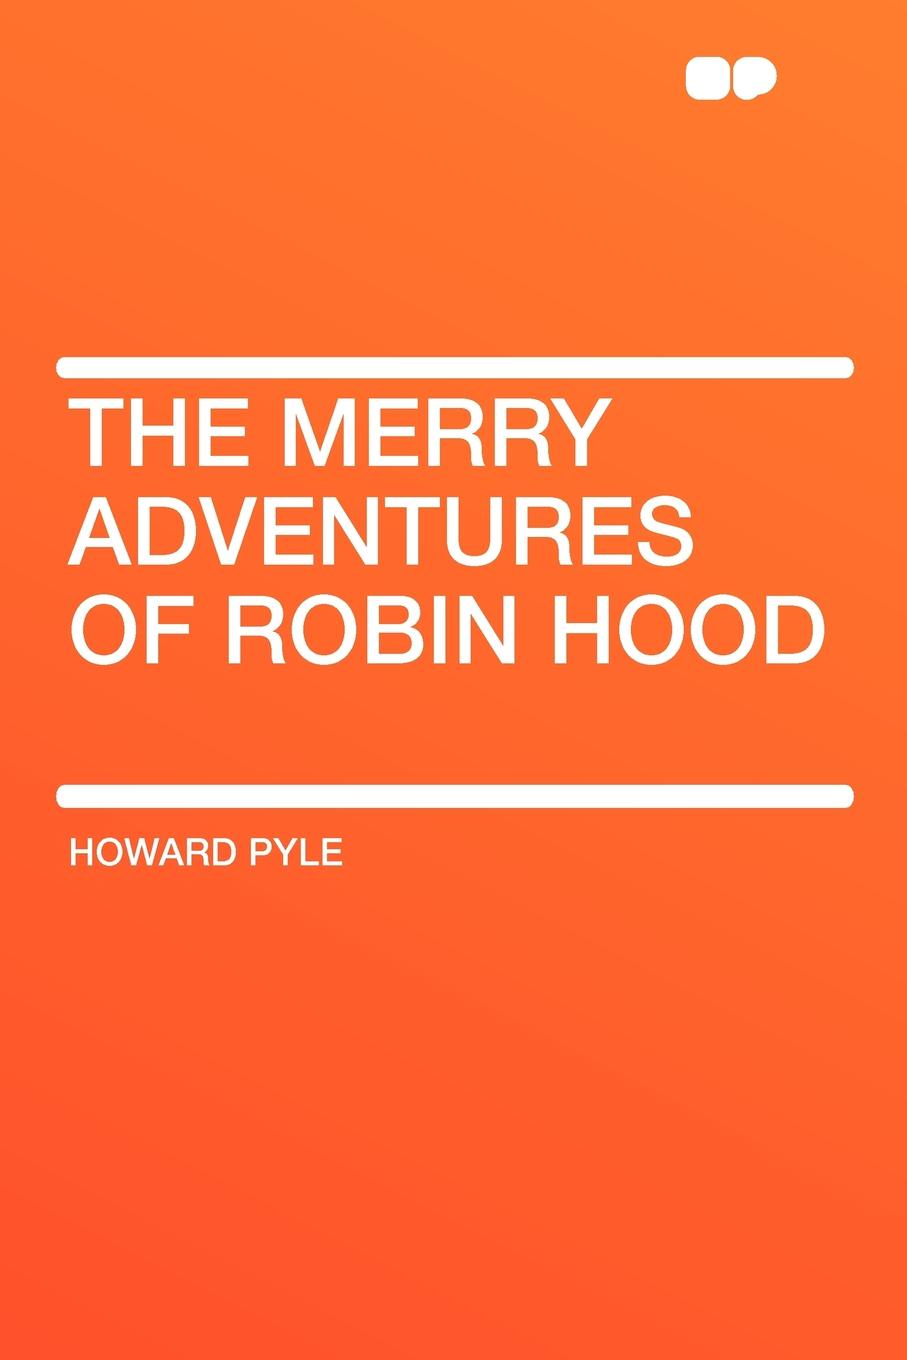 Howard Pyle The Merry Adventures of Robin Hood paul creswick robin hood